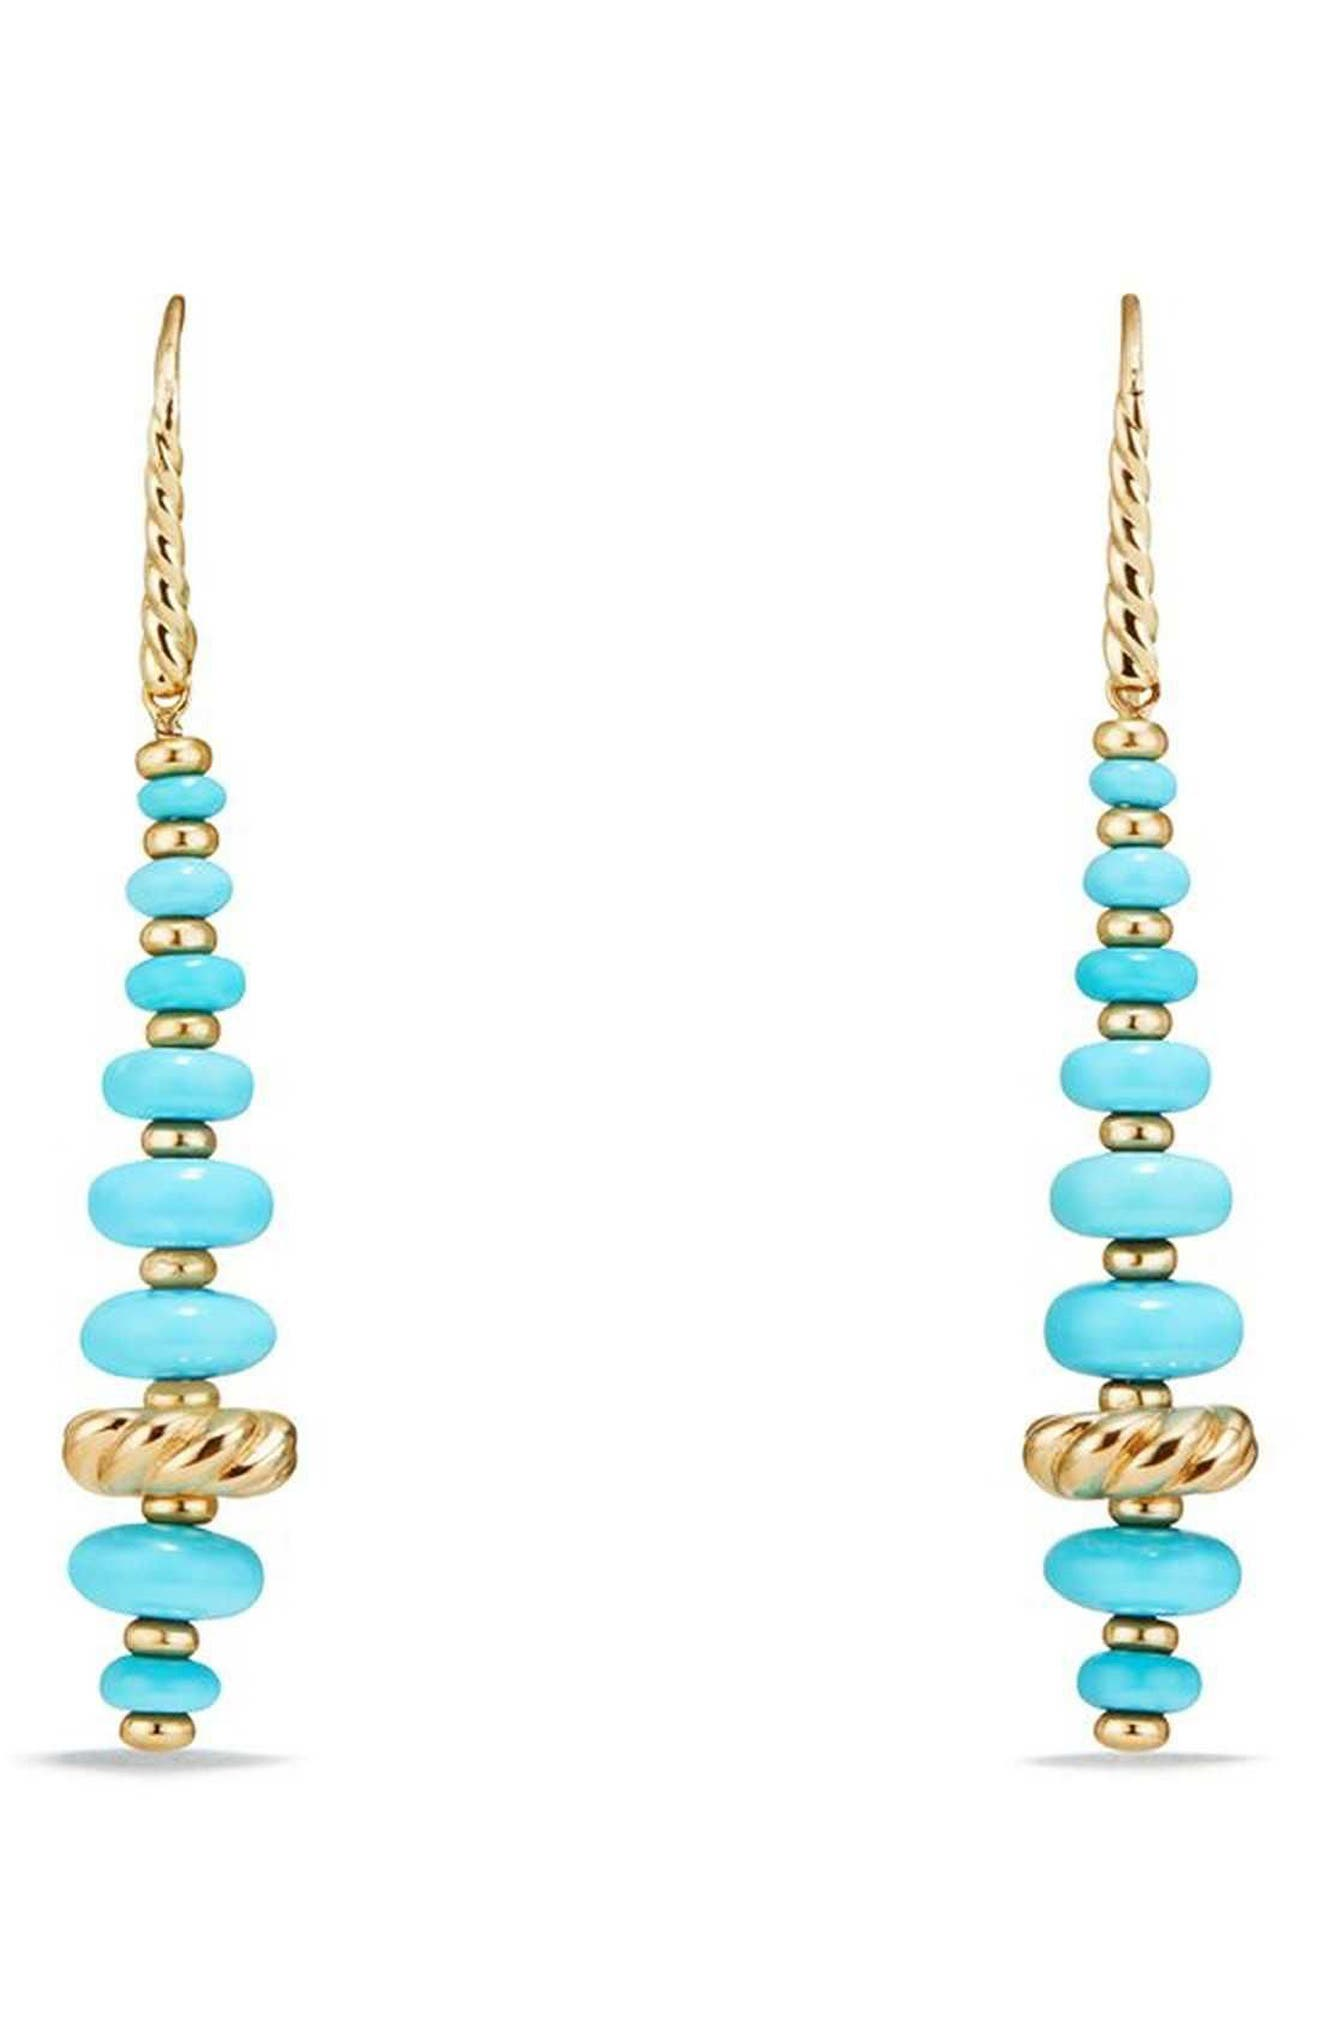 Rio Rondelle Drop Earrings in 18K Gold,                         Main,                         color, Gold/ Turquoise